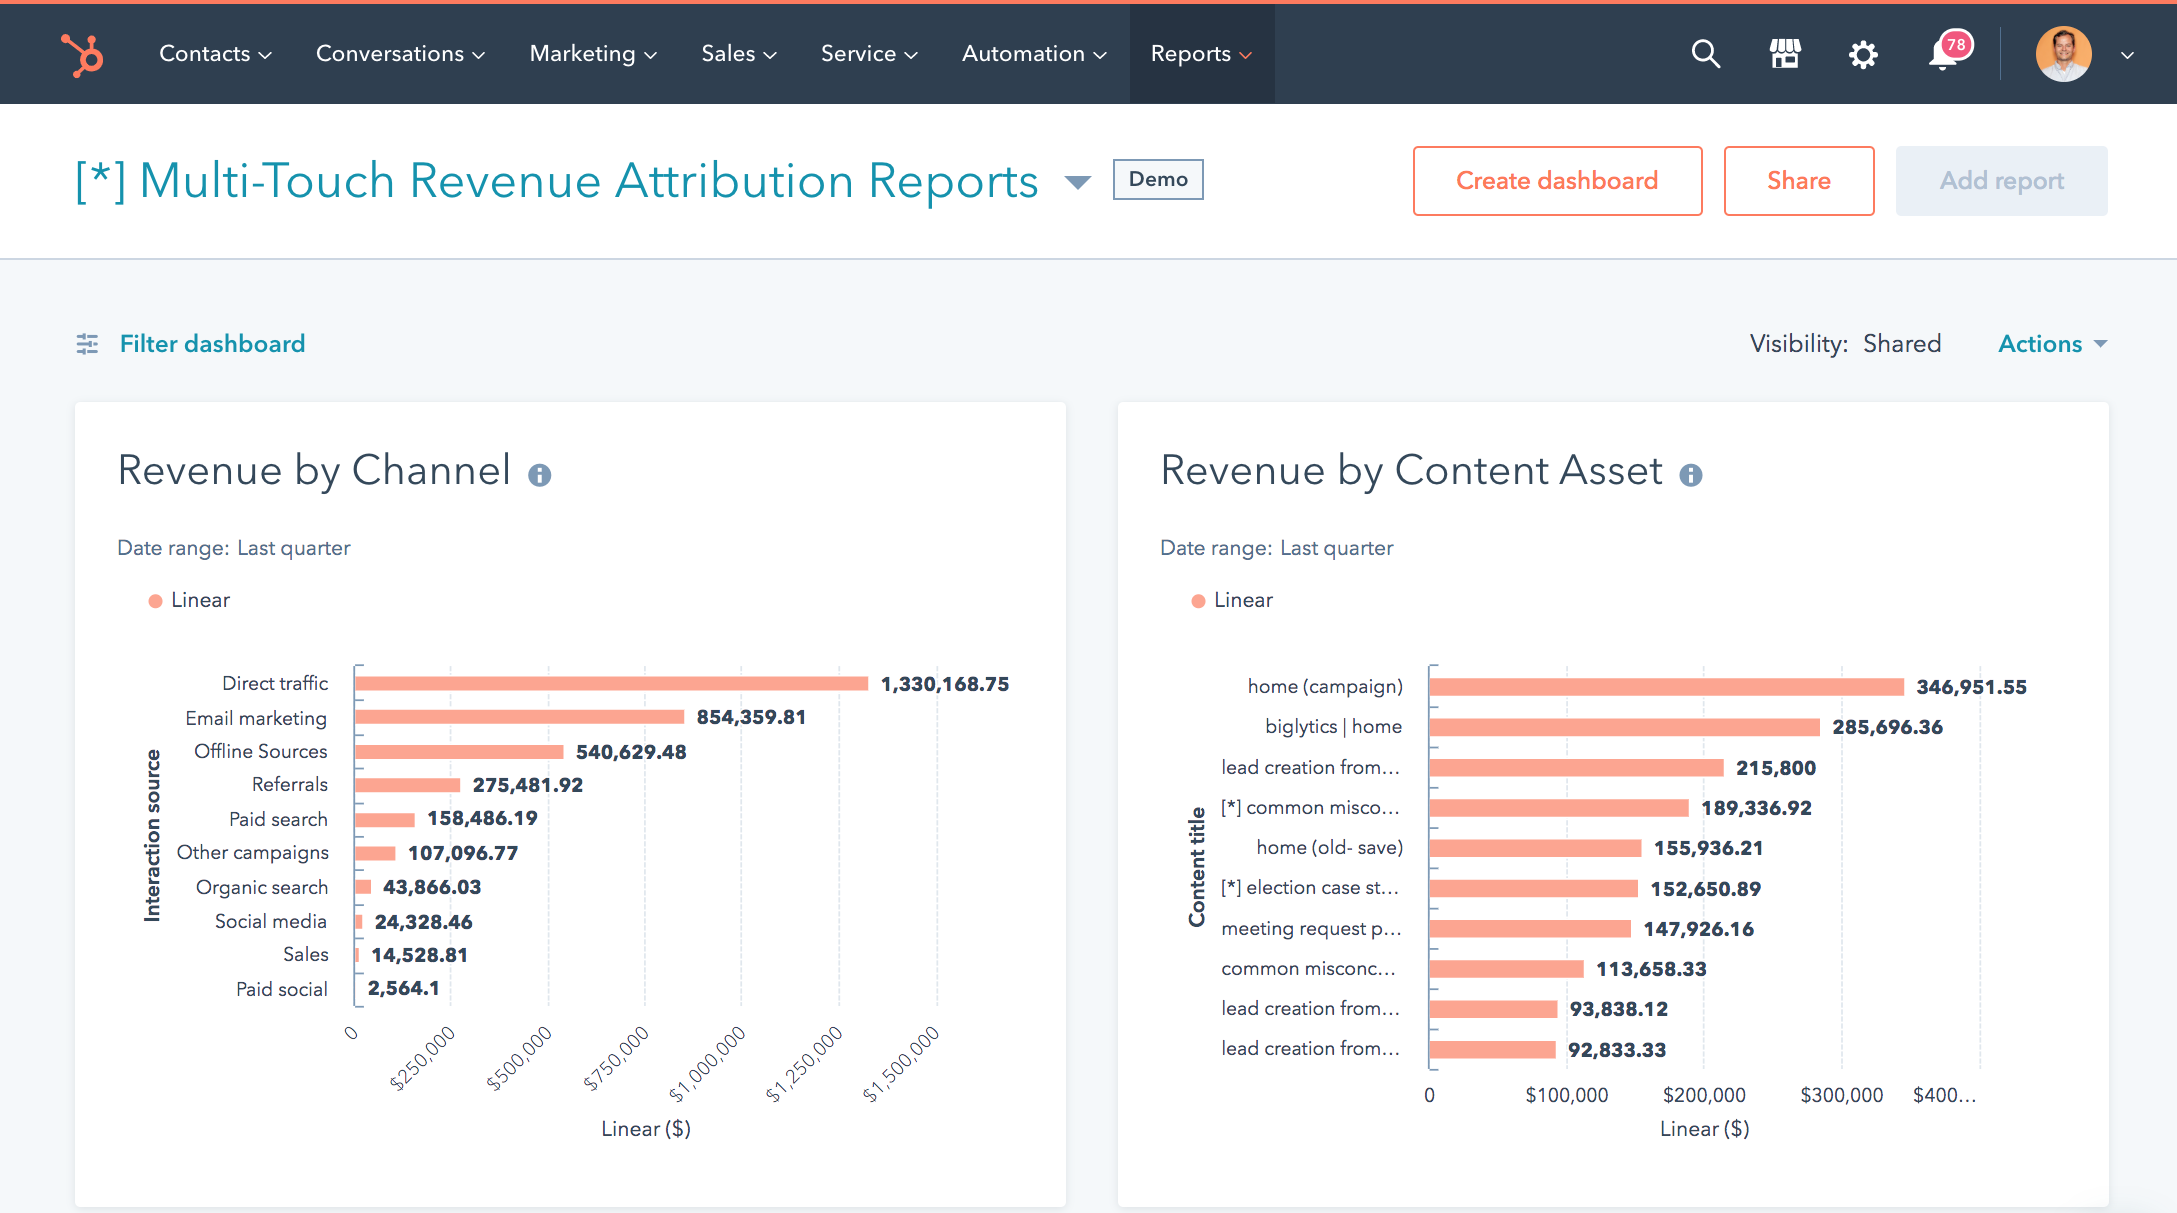 Multi-Touch Revenue Attribution Reports organized by channel and content asset